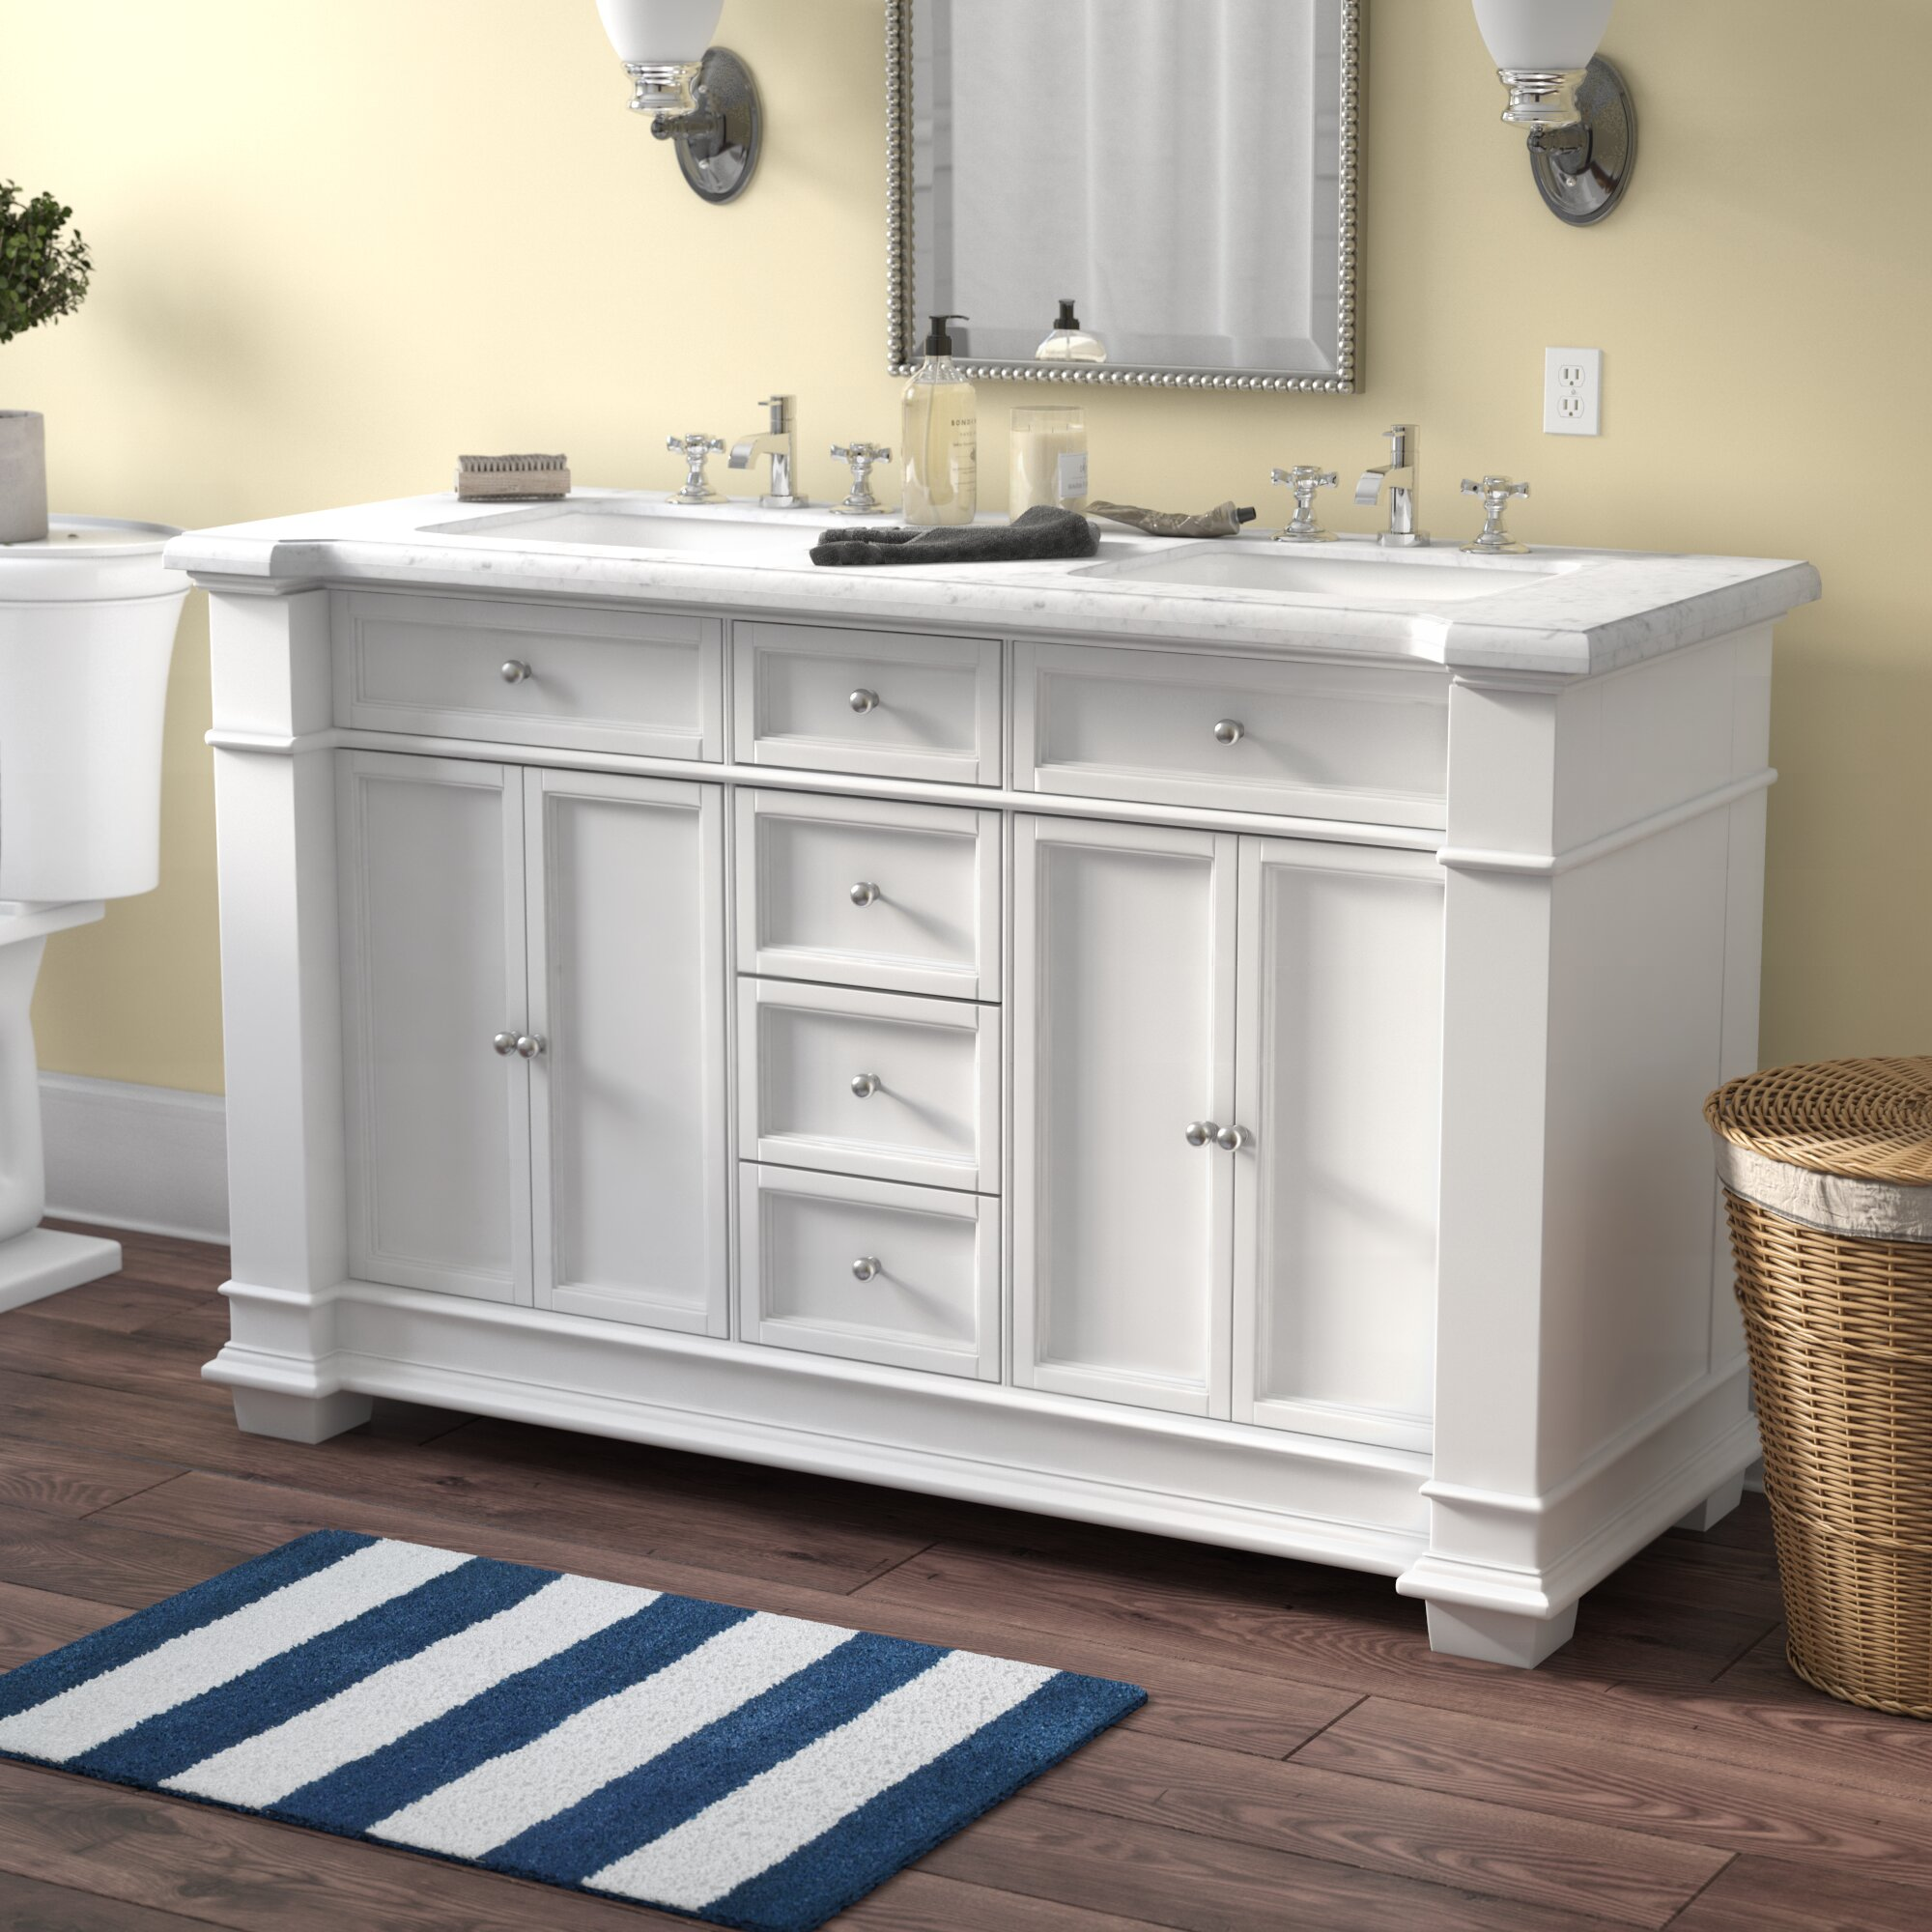 Darby Home Co Riccardo 60 Double Bathroom Vanity Set Reviews Wayfair